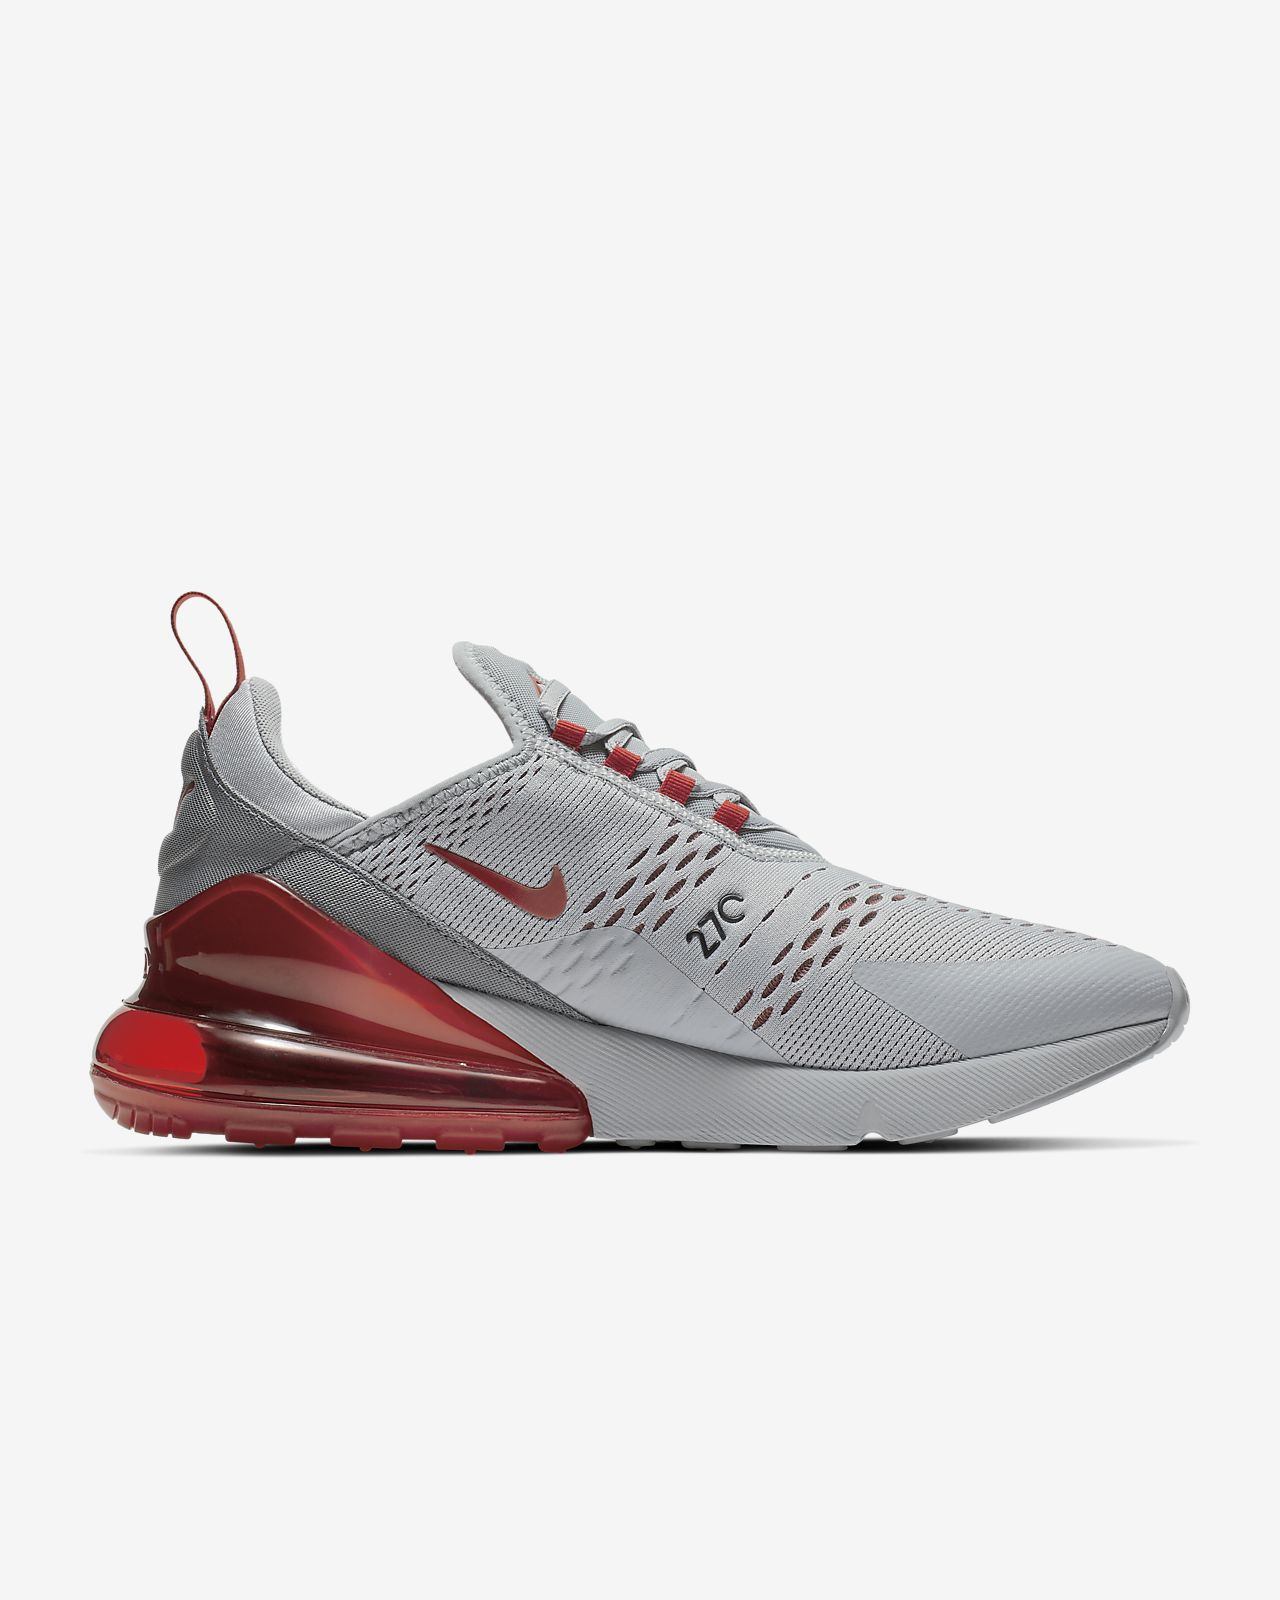 lowest price fdbb4 2aca5 ... Nike Air Max 270 Men s Shoe